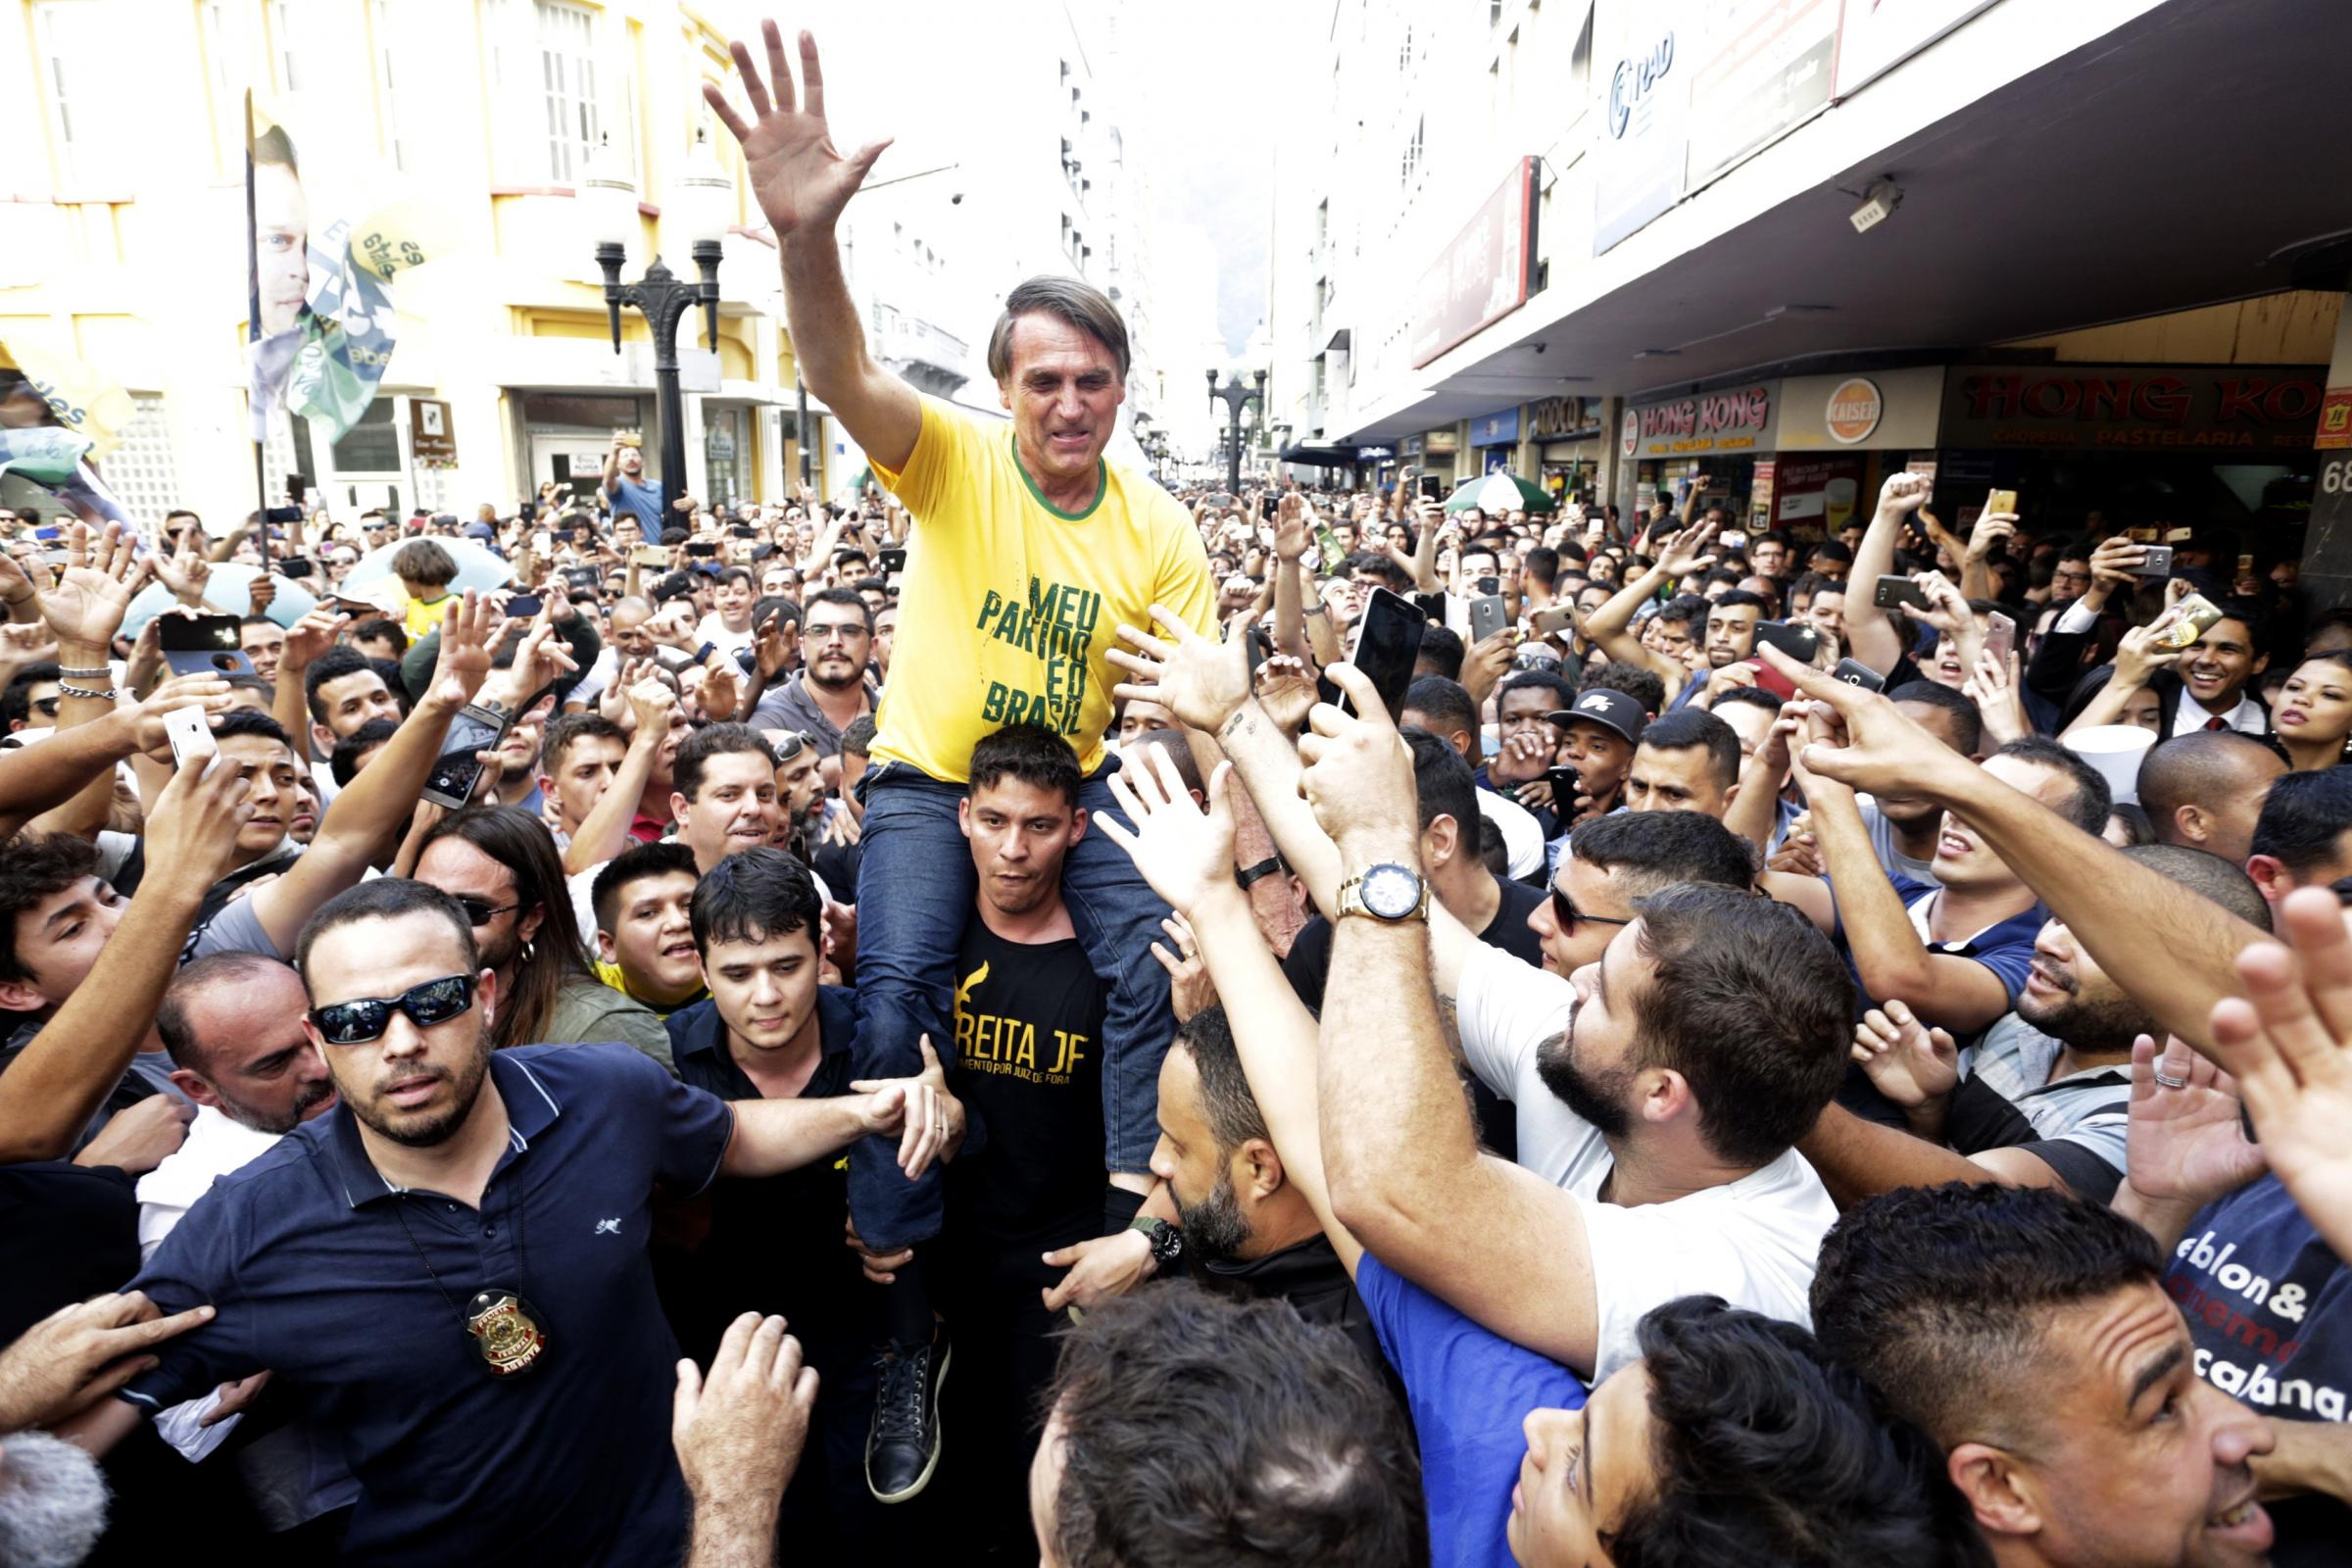 Brazil Presidential Candidate Stabbed At Rally